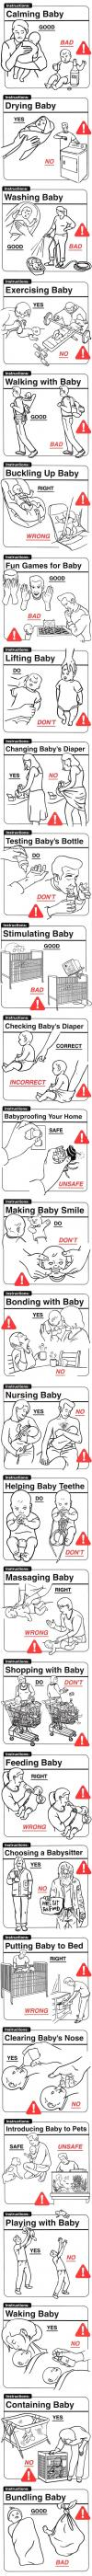 baby rearing, how to care for, instructions, do's and don't's